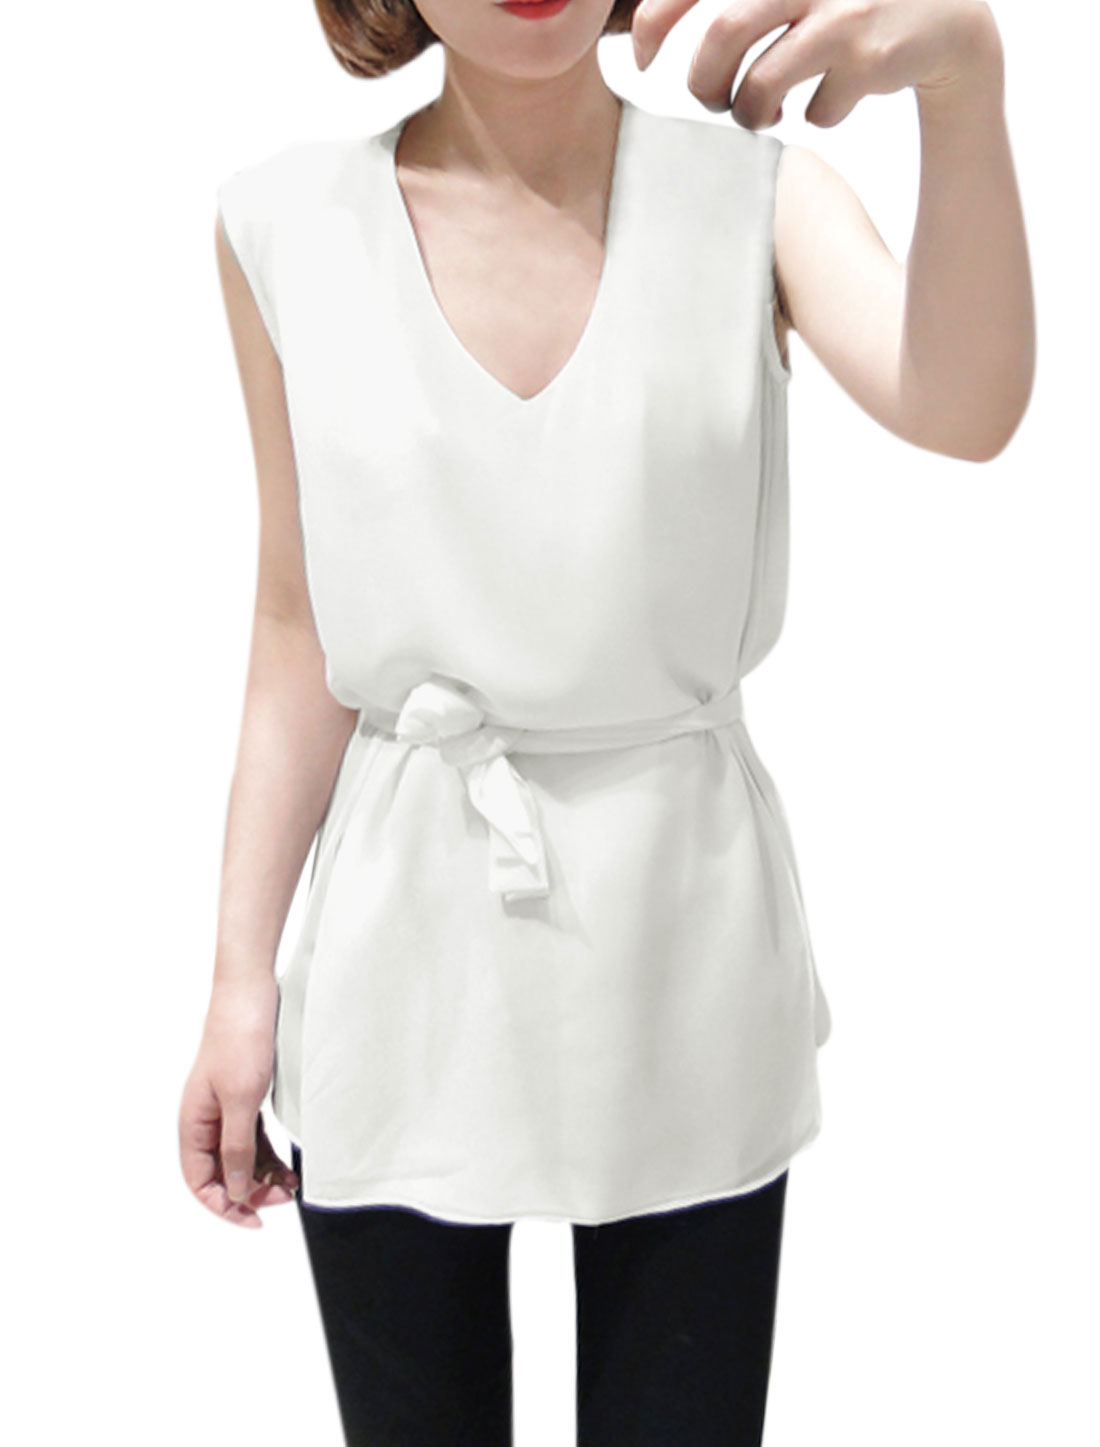 Lady Tiered Cutting Blouse w Self-Tie Waist Strap White XS